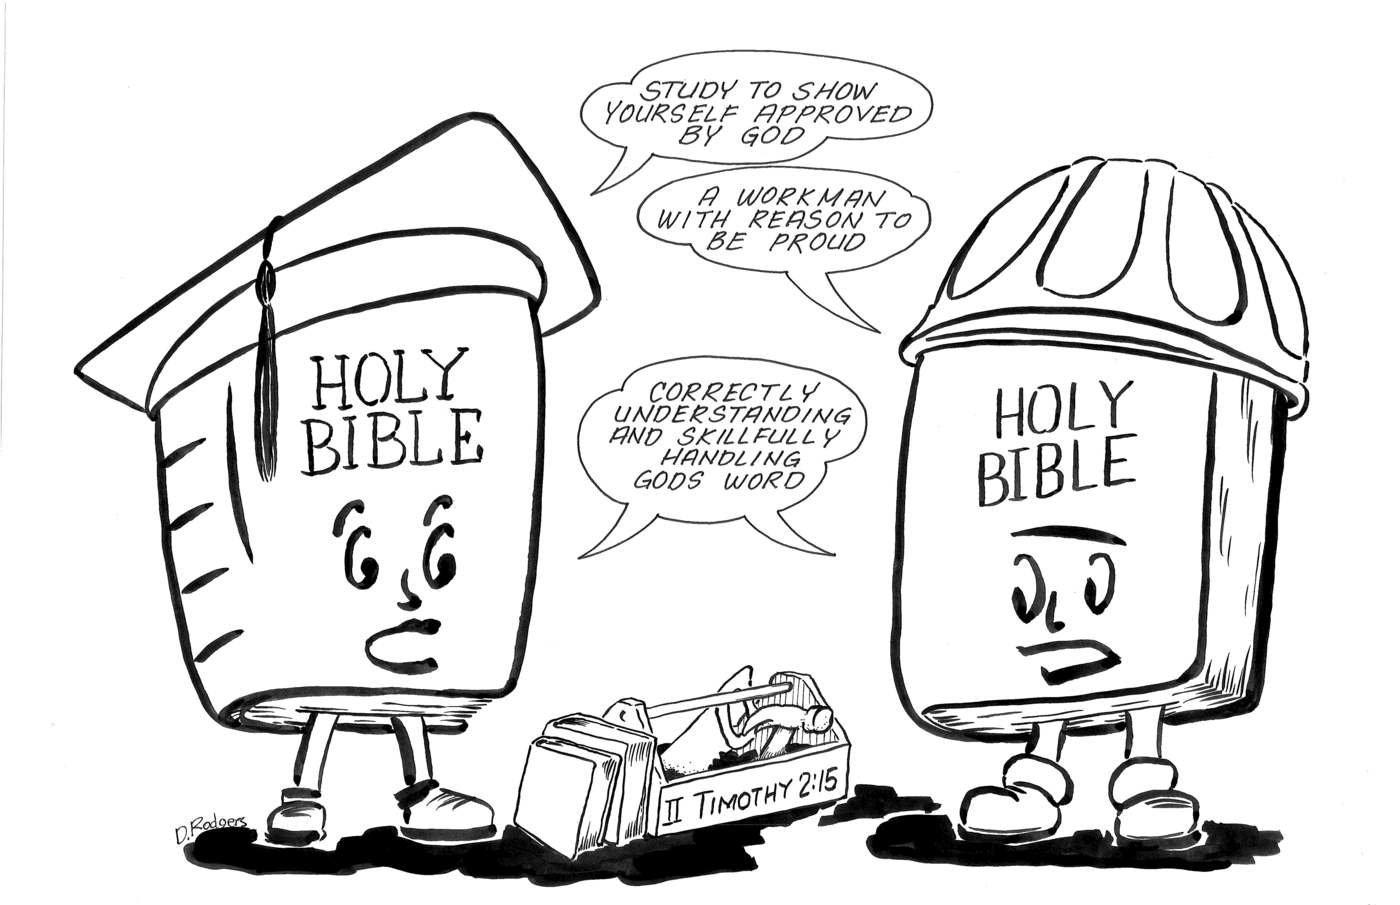 Sunday School Lesson Illustrations by Donald Rodgers at